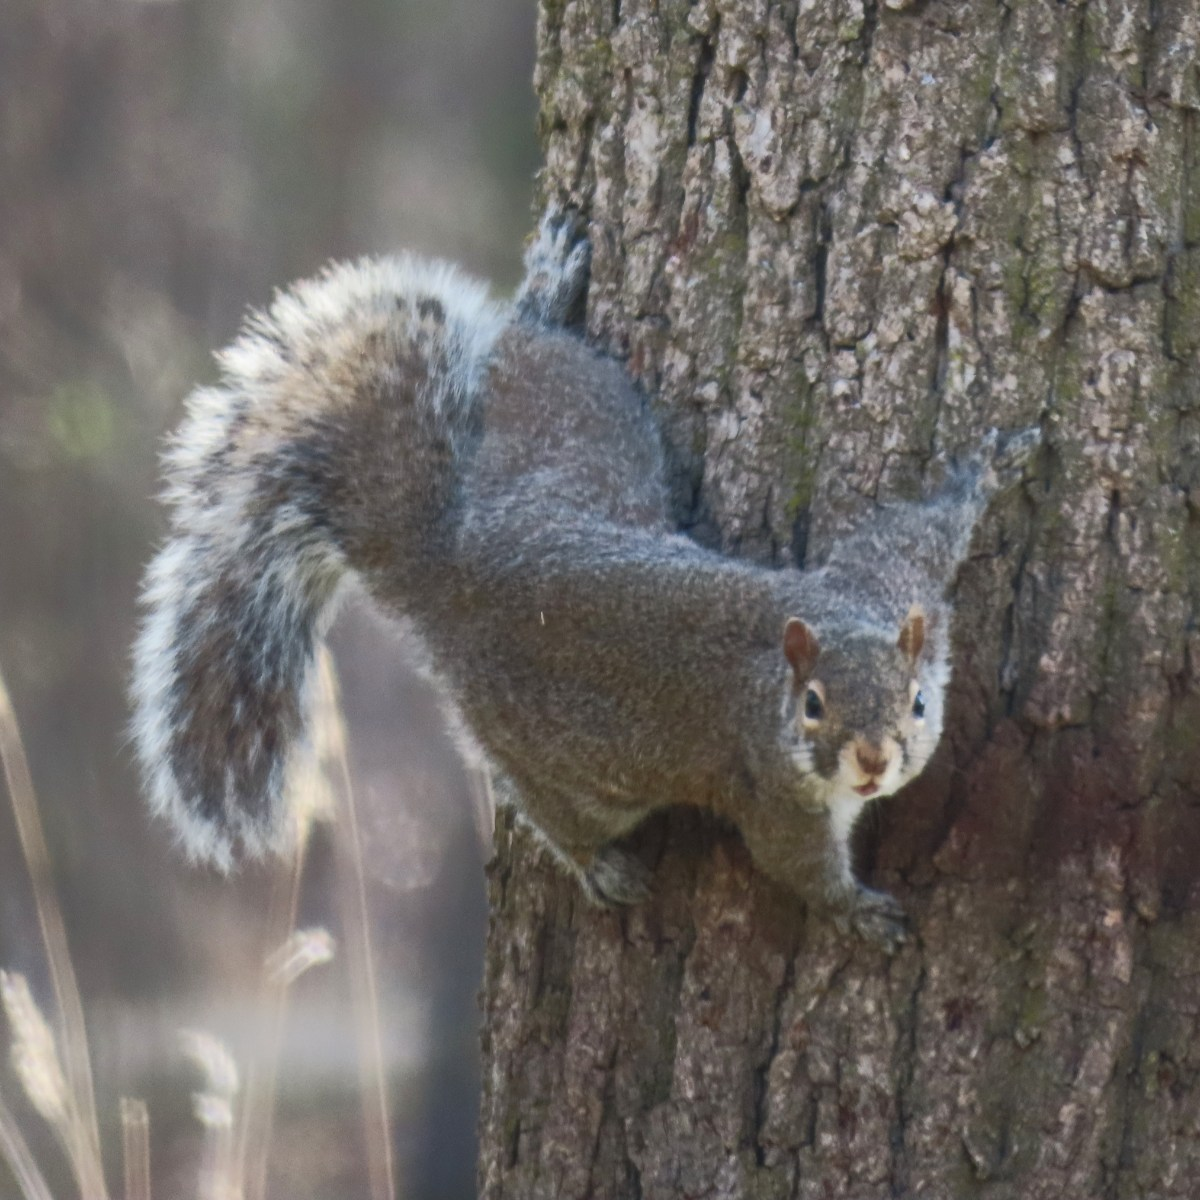 A squirrel climbs sideways around a tree